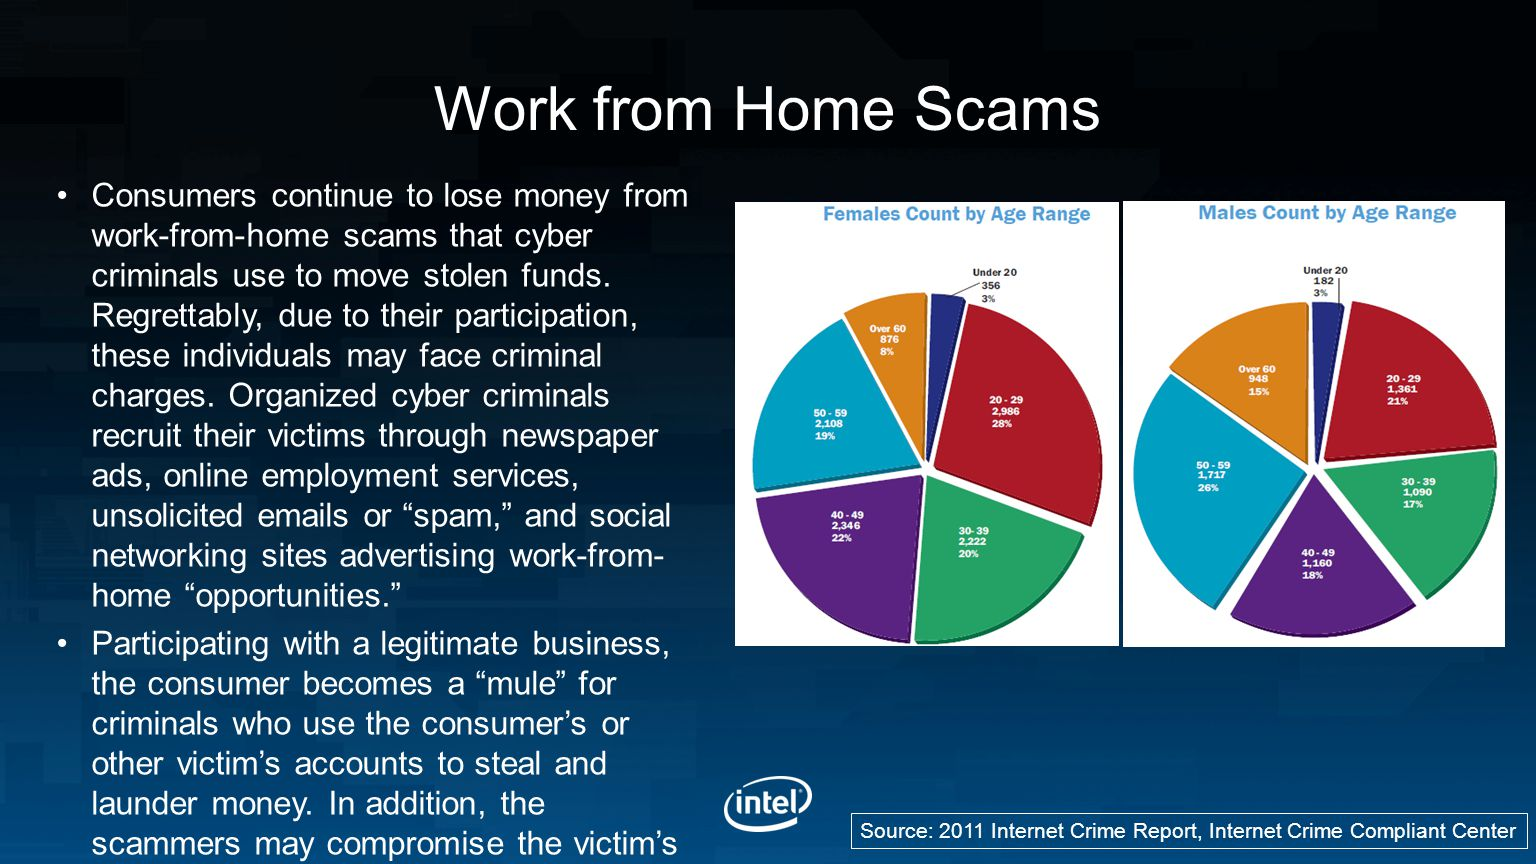 Work from Home Scams